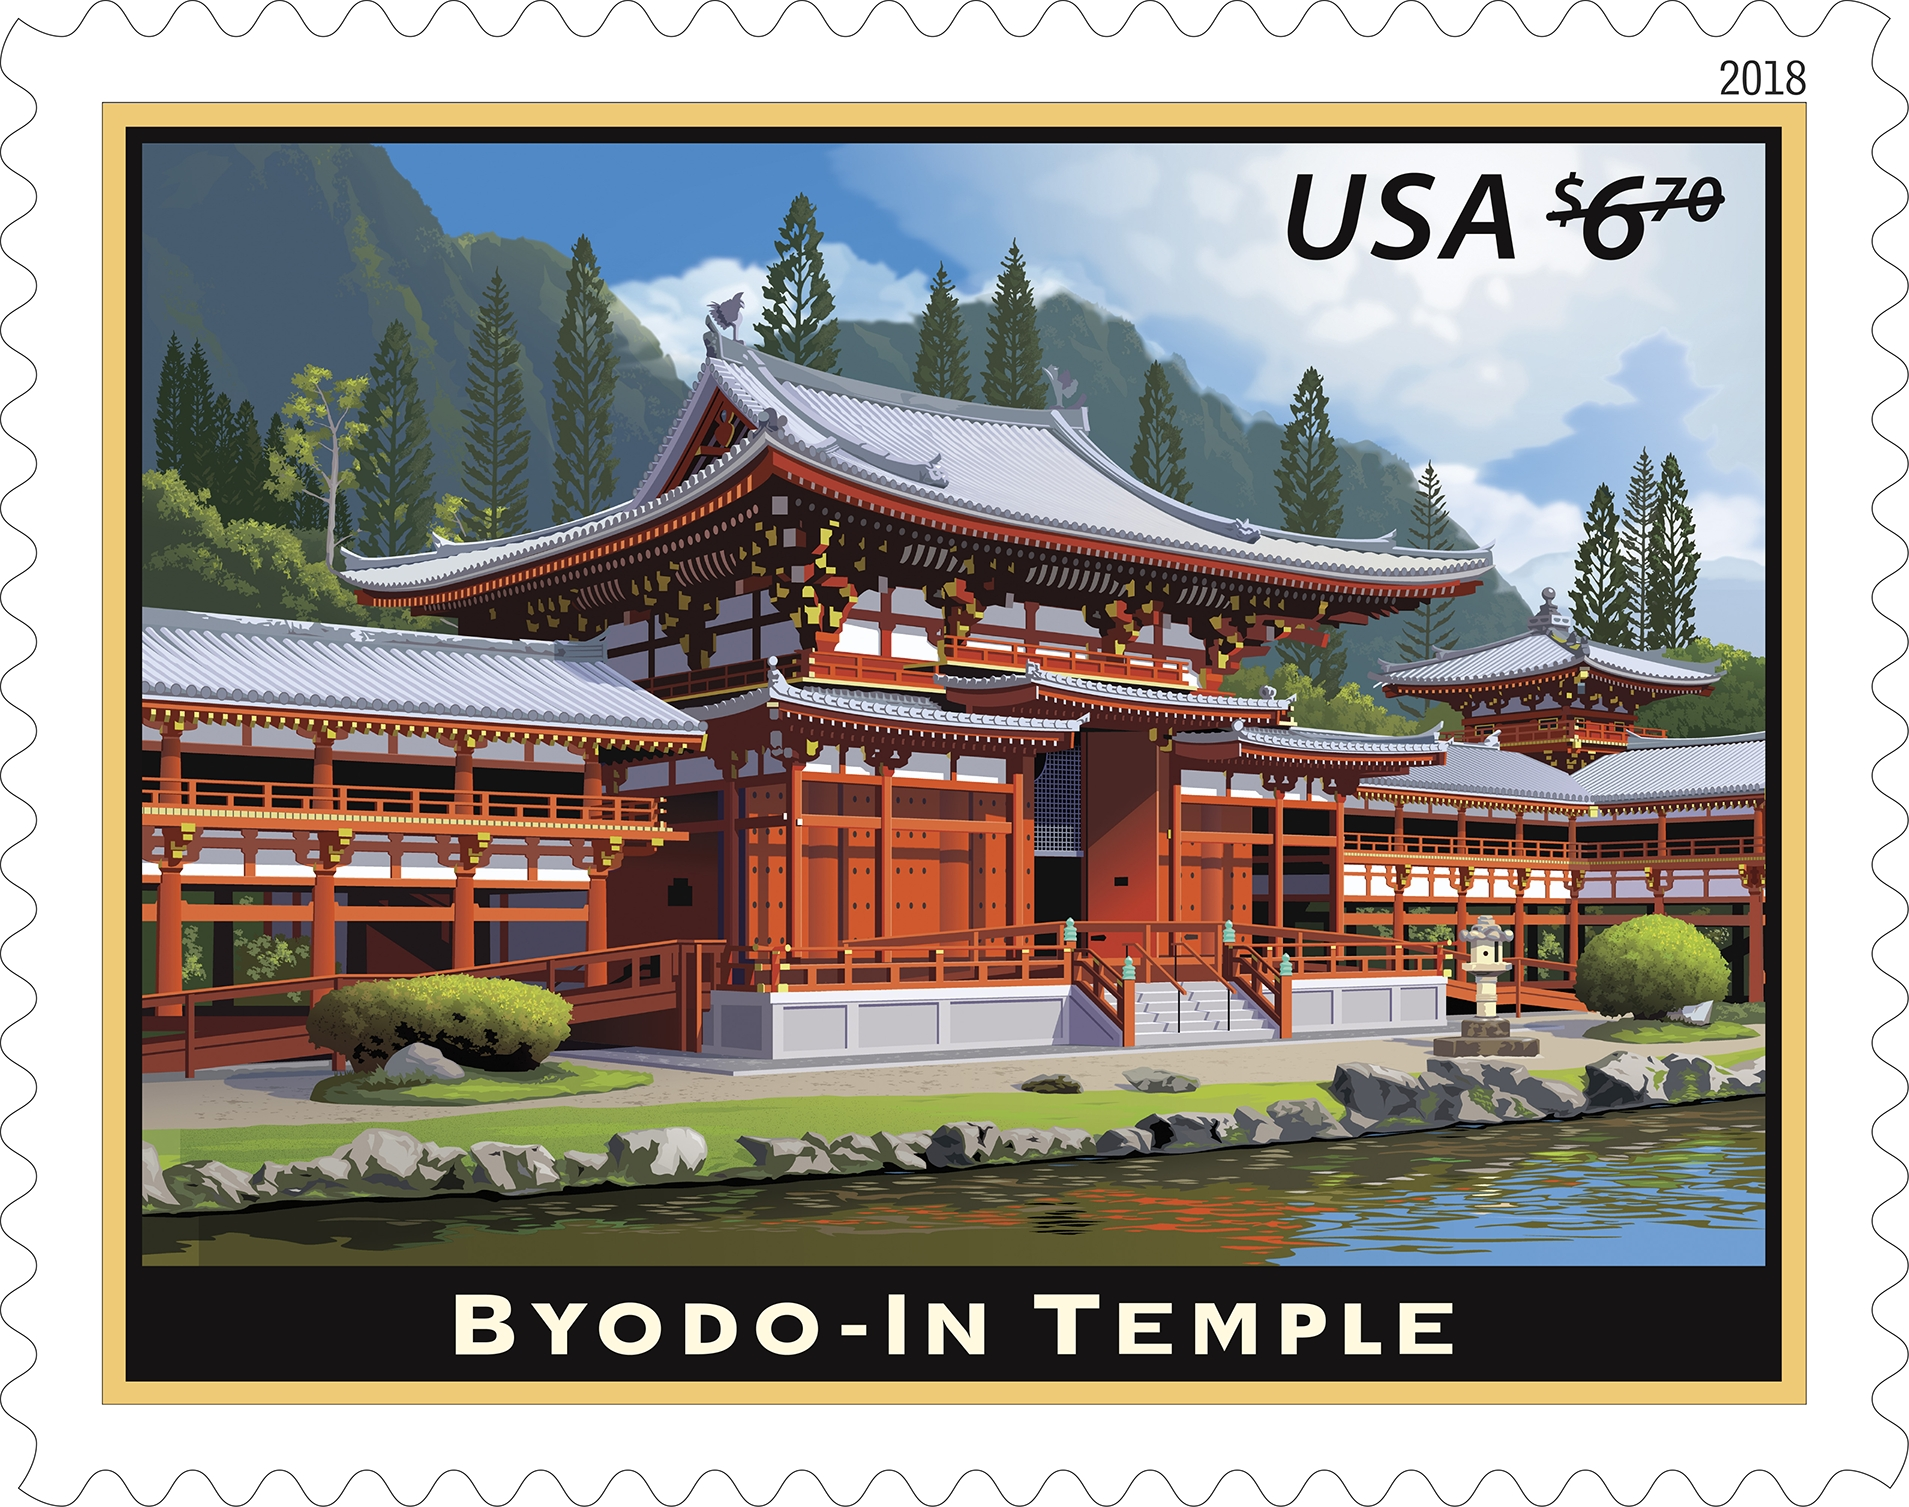 Byodo-In Temple (Priority Mail): This Priority Mail stamp features a colorful illustration of the Byodo-In Temple, a popular tourist attraction in Hawai'i. (USPS)